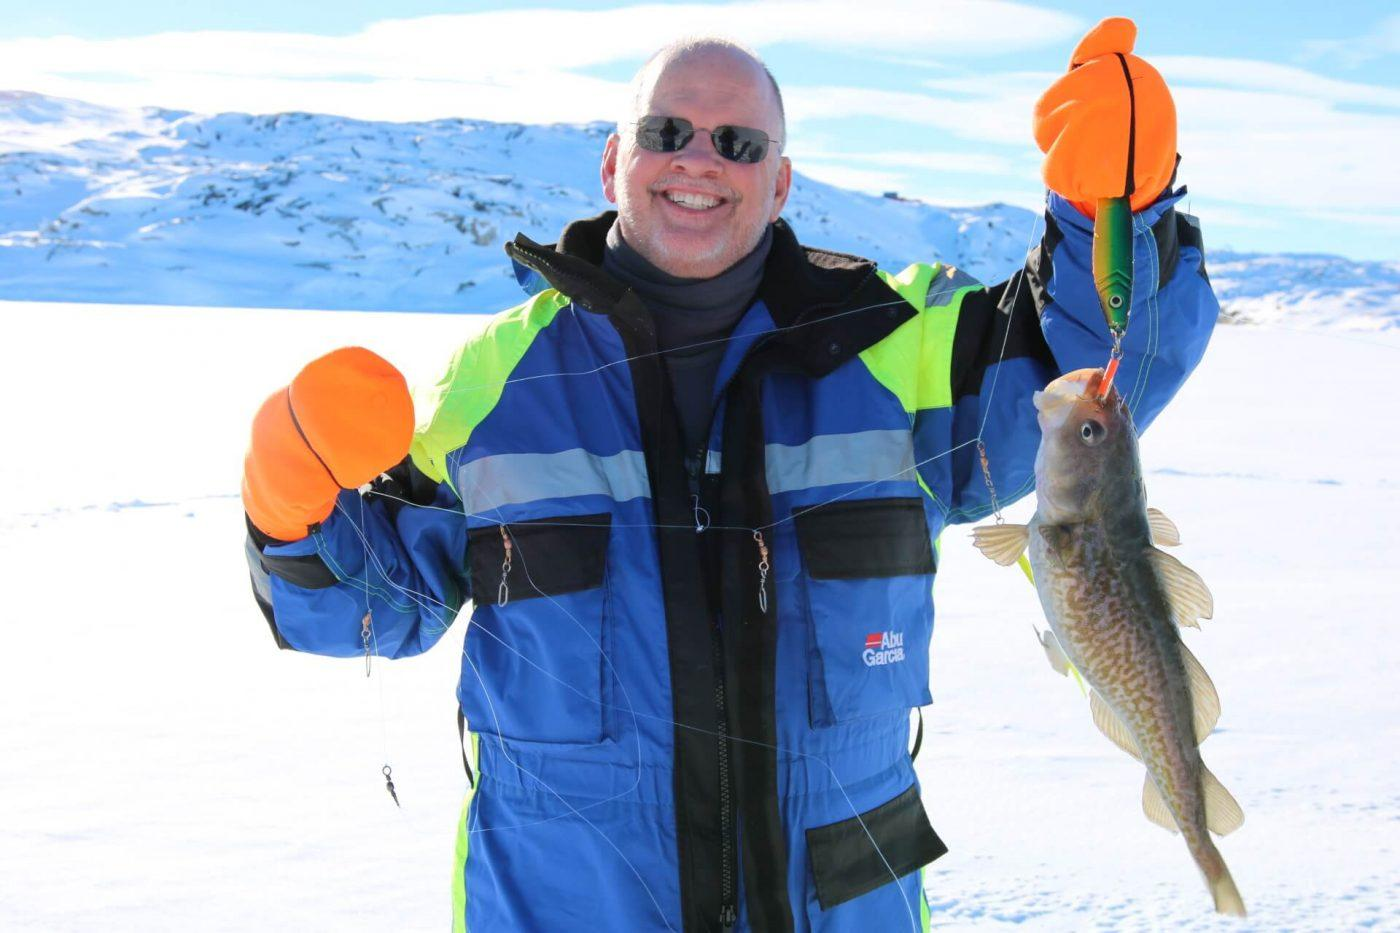 Happy tourist with his catch from ice fishing. Photo by Ilulissat Water Safari